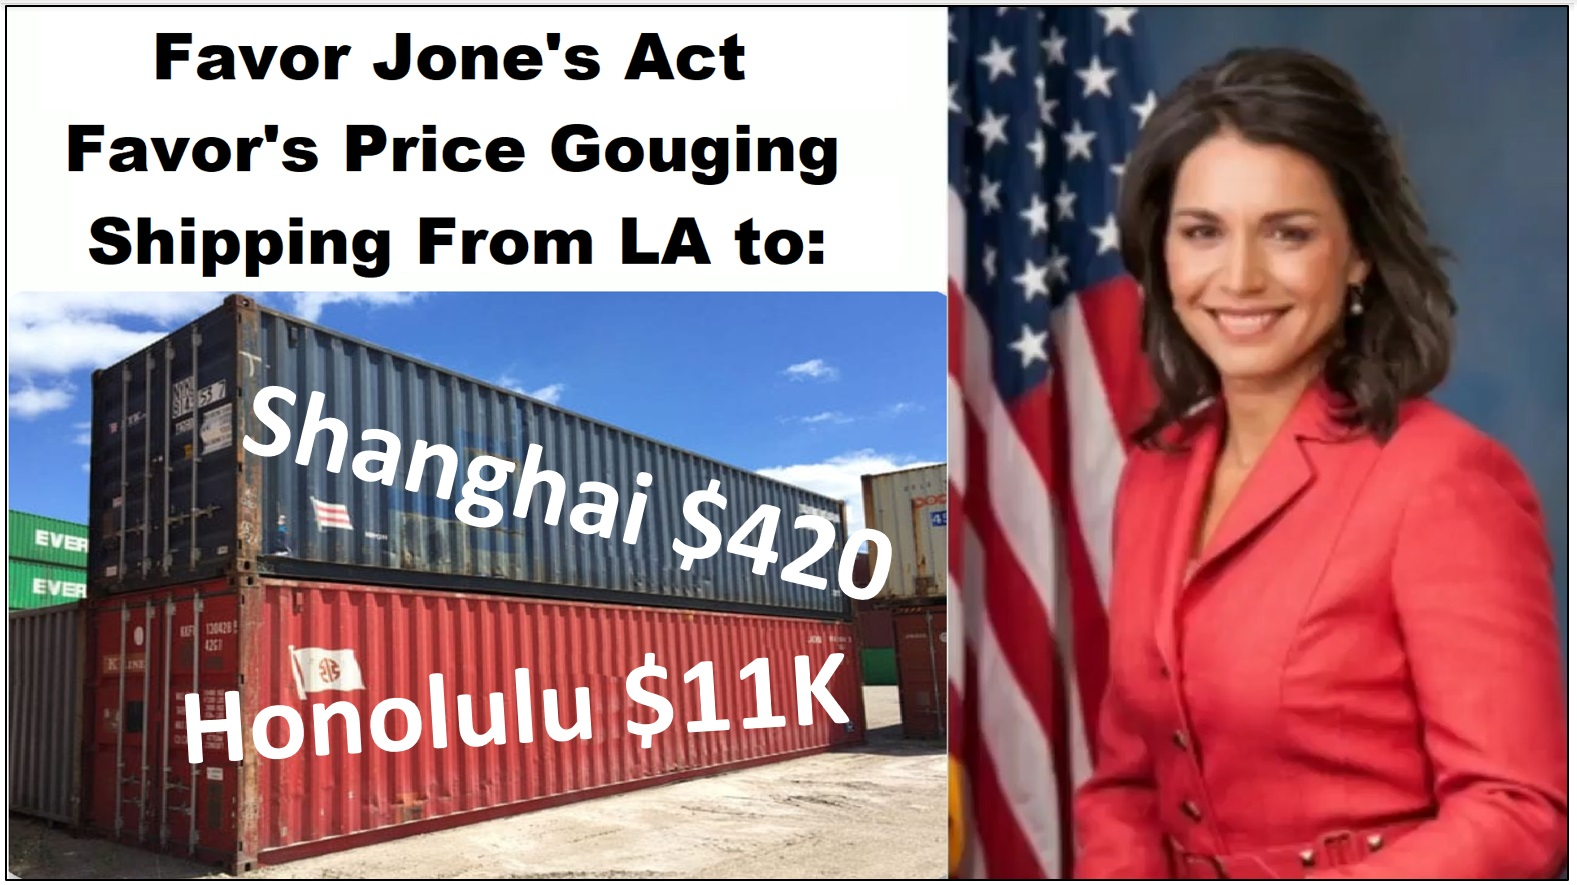 Presidential Candidate Tulsi Gabbard in with the Jones Act – Controversial